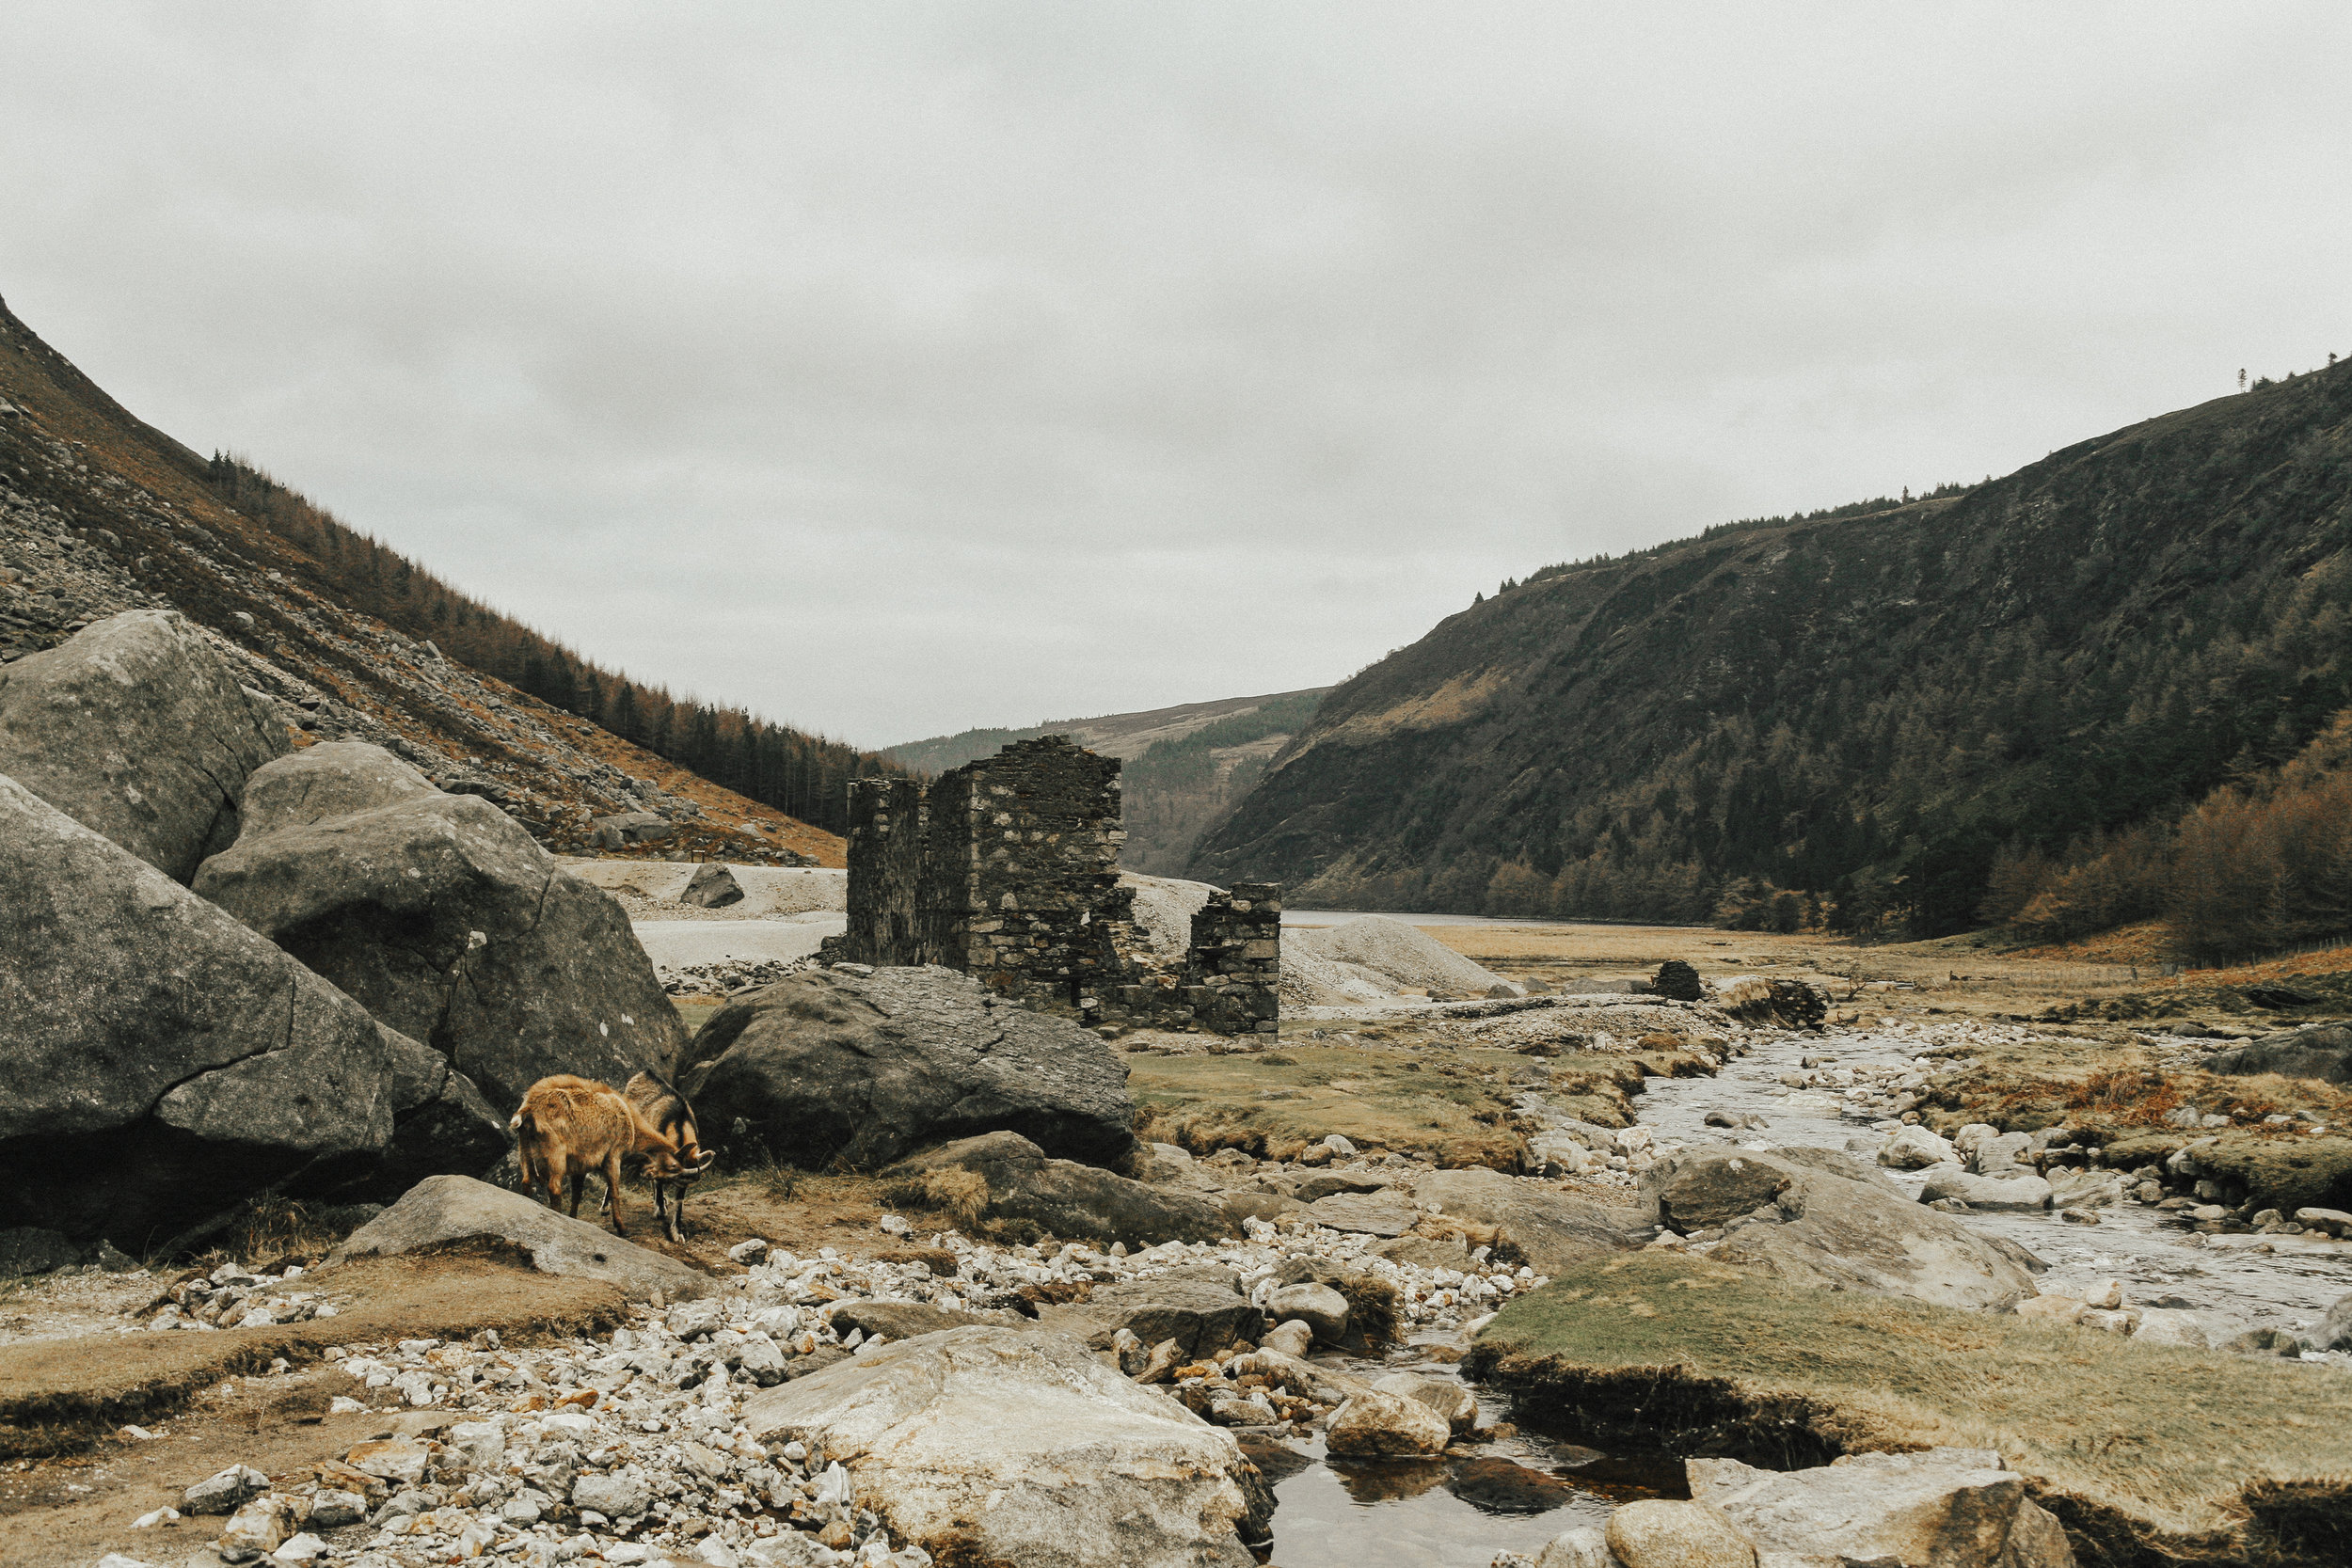 "Glendalough (Irish: Gleann Dá Loch, meaning ""Valley of two lakes"") is a glacial valley in County Wicklow, Ireland, renowned for an Early Medieval monastic settlement founded in the 6th century by St Kevin."